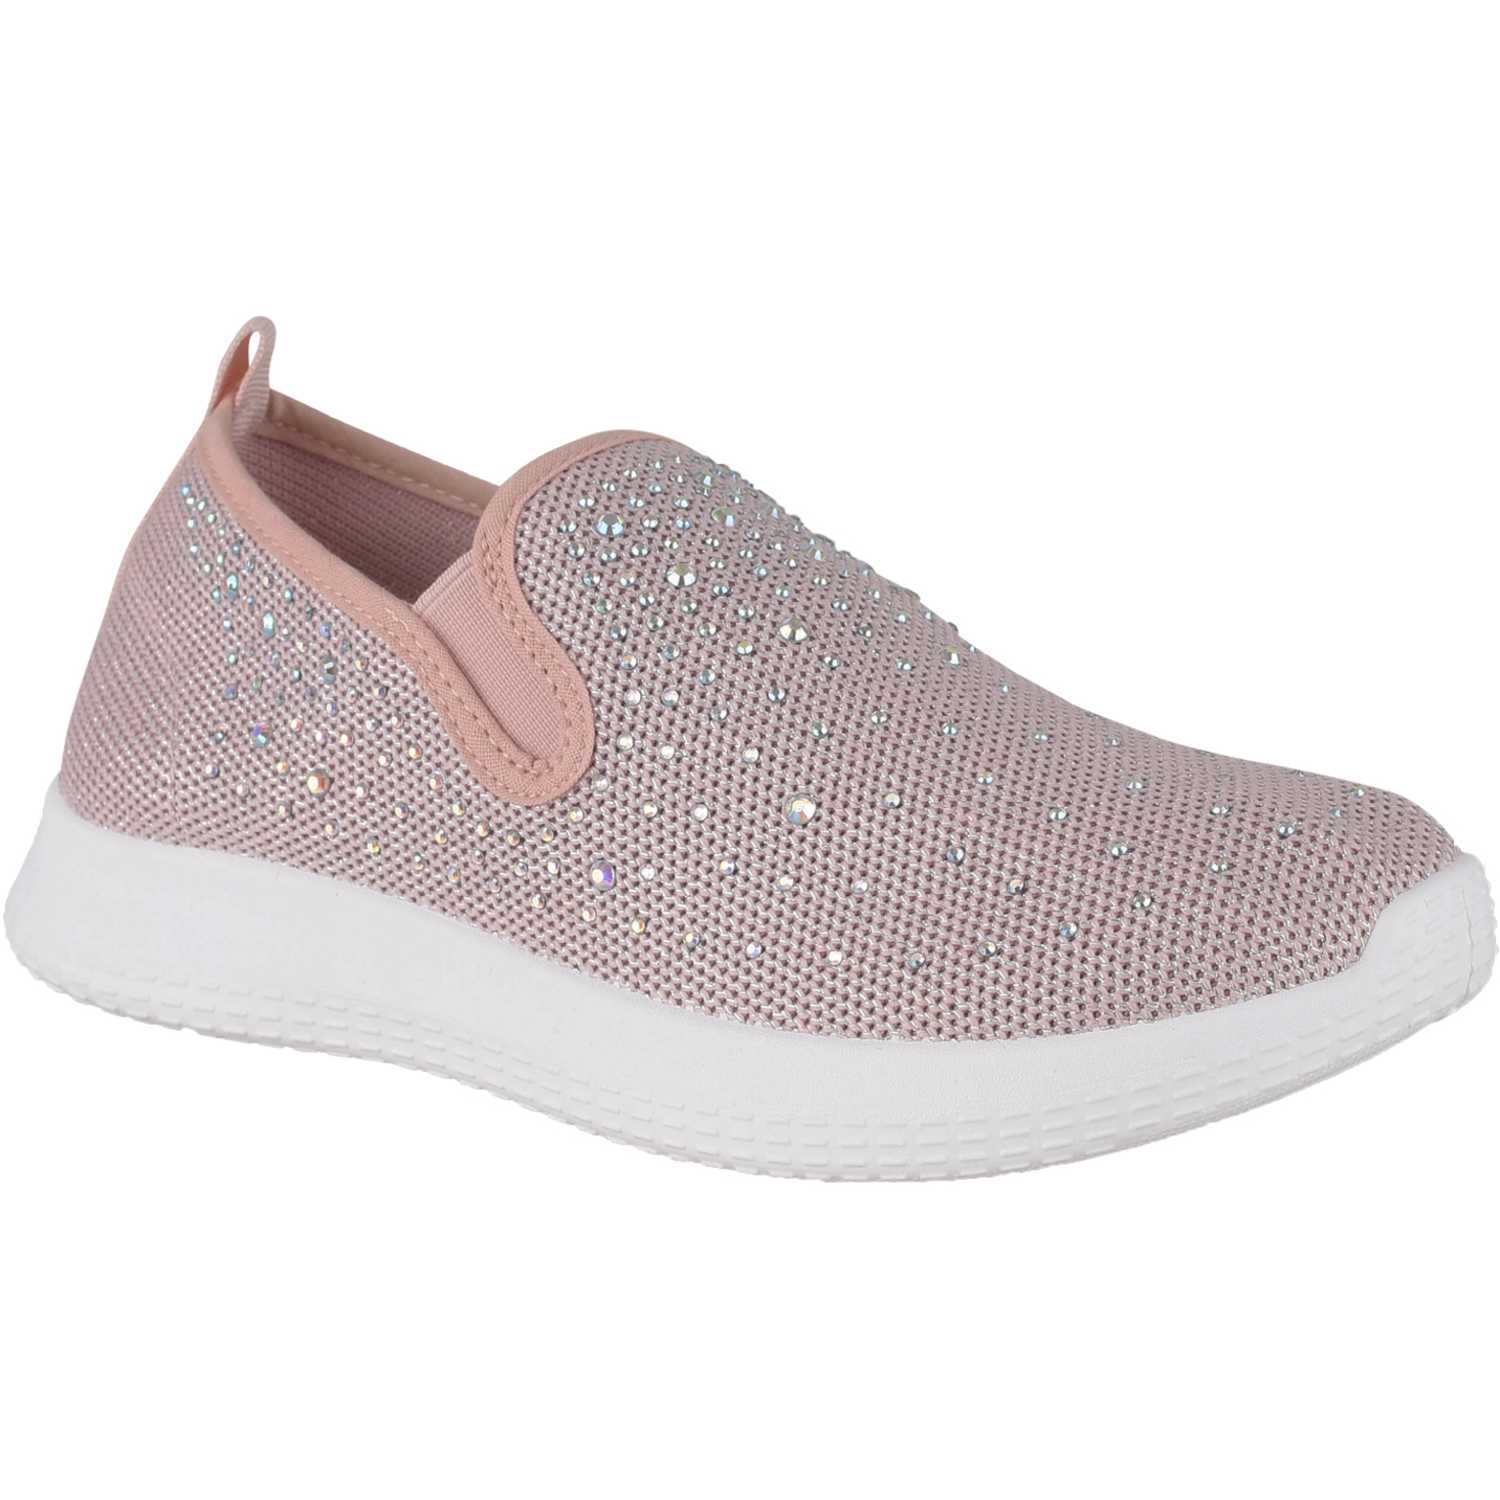 Platanitos z 5638 Rosado Zapatillas Fashion